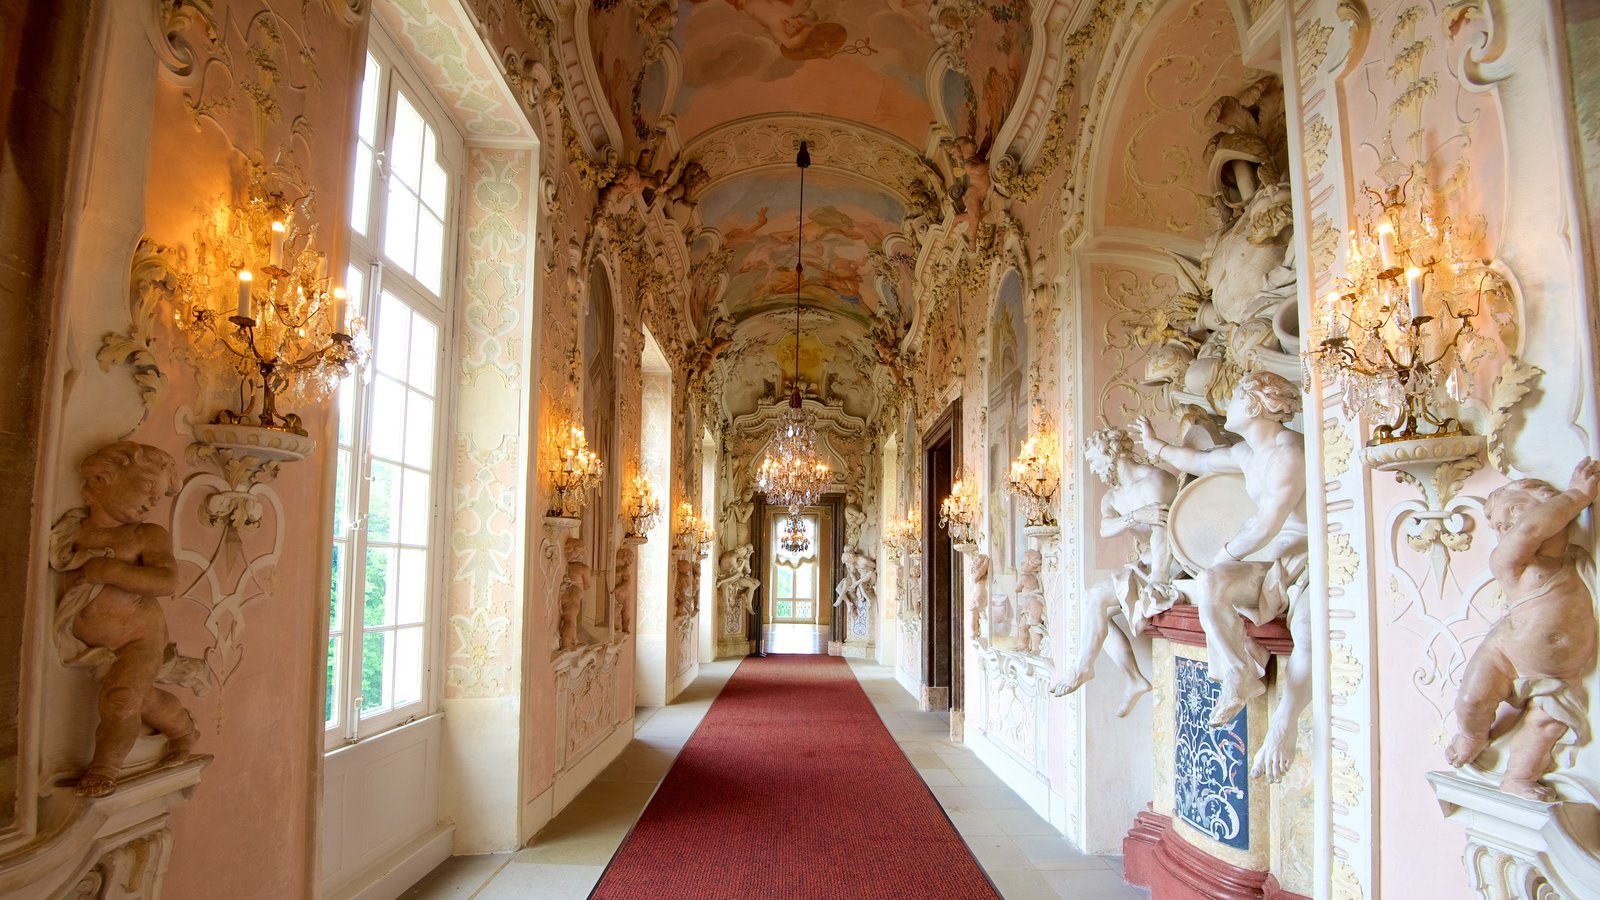 Ludwigsburg palace pictures view photos images of for Interio stuttgart